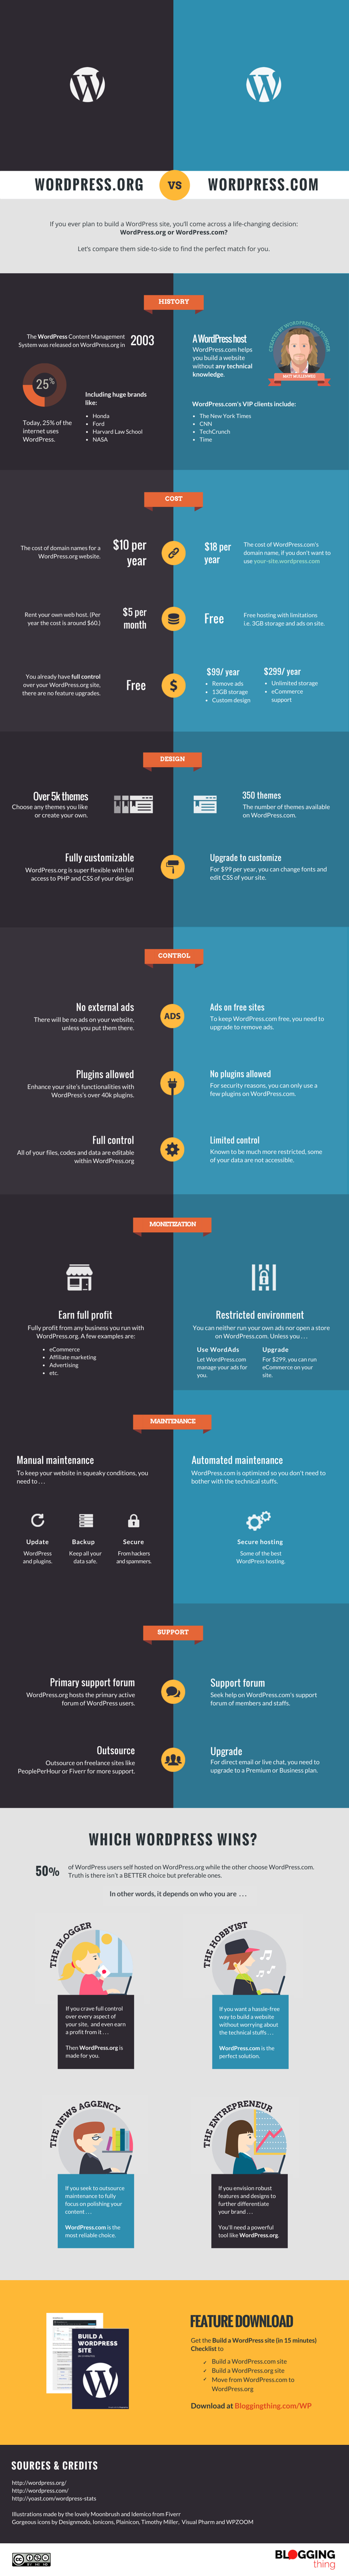 bloggen met WordPress infographic